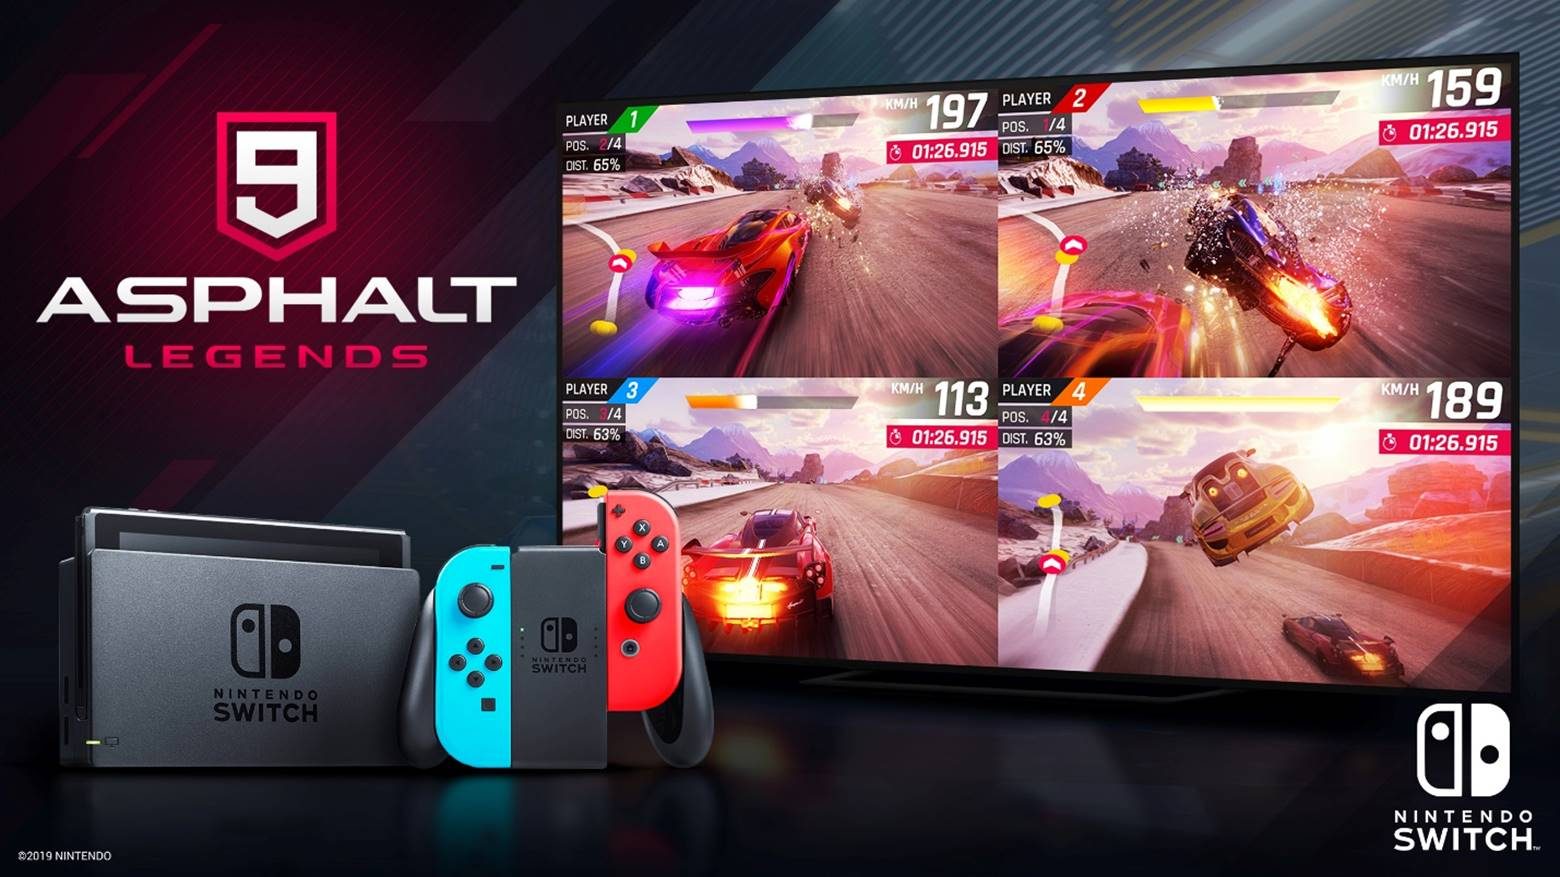 Asphalt 9: Legends hits one million installs on Switch in first week, more content coming